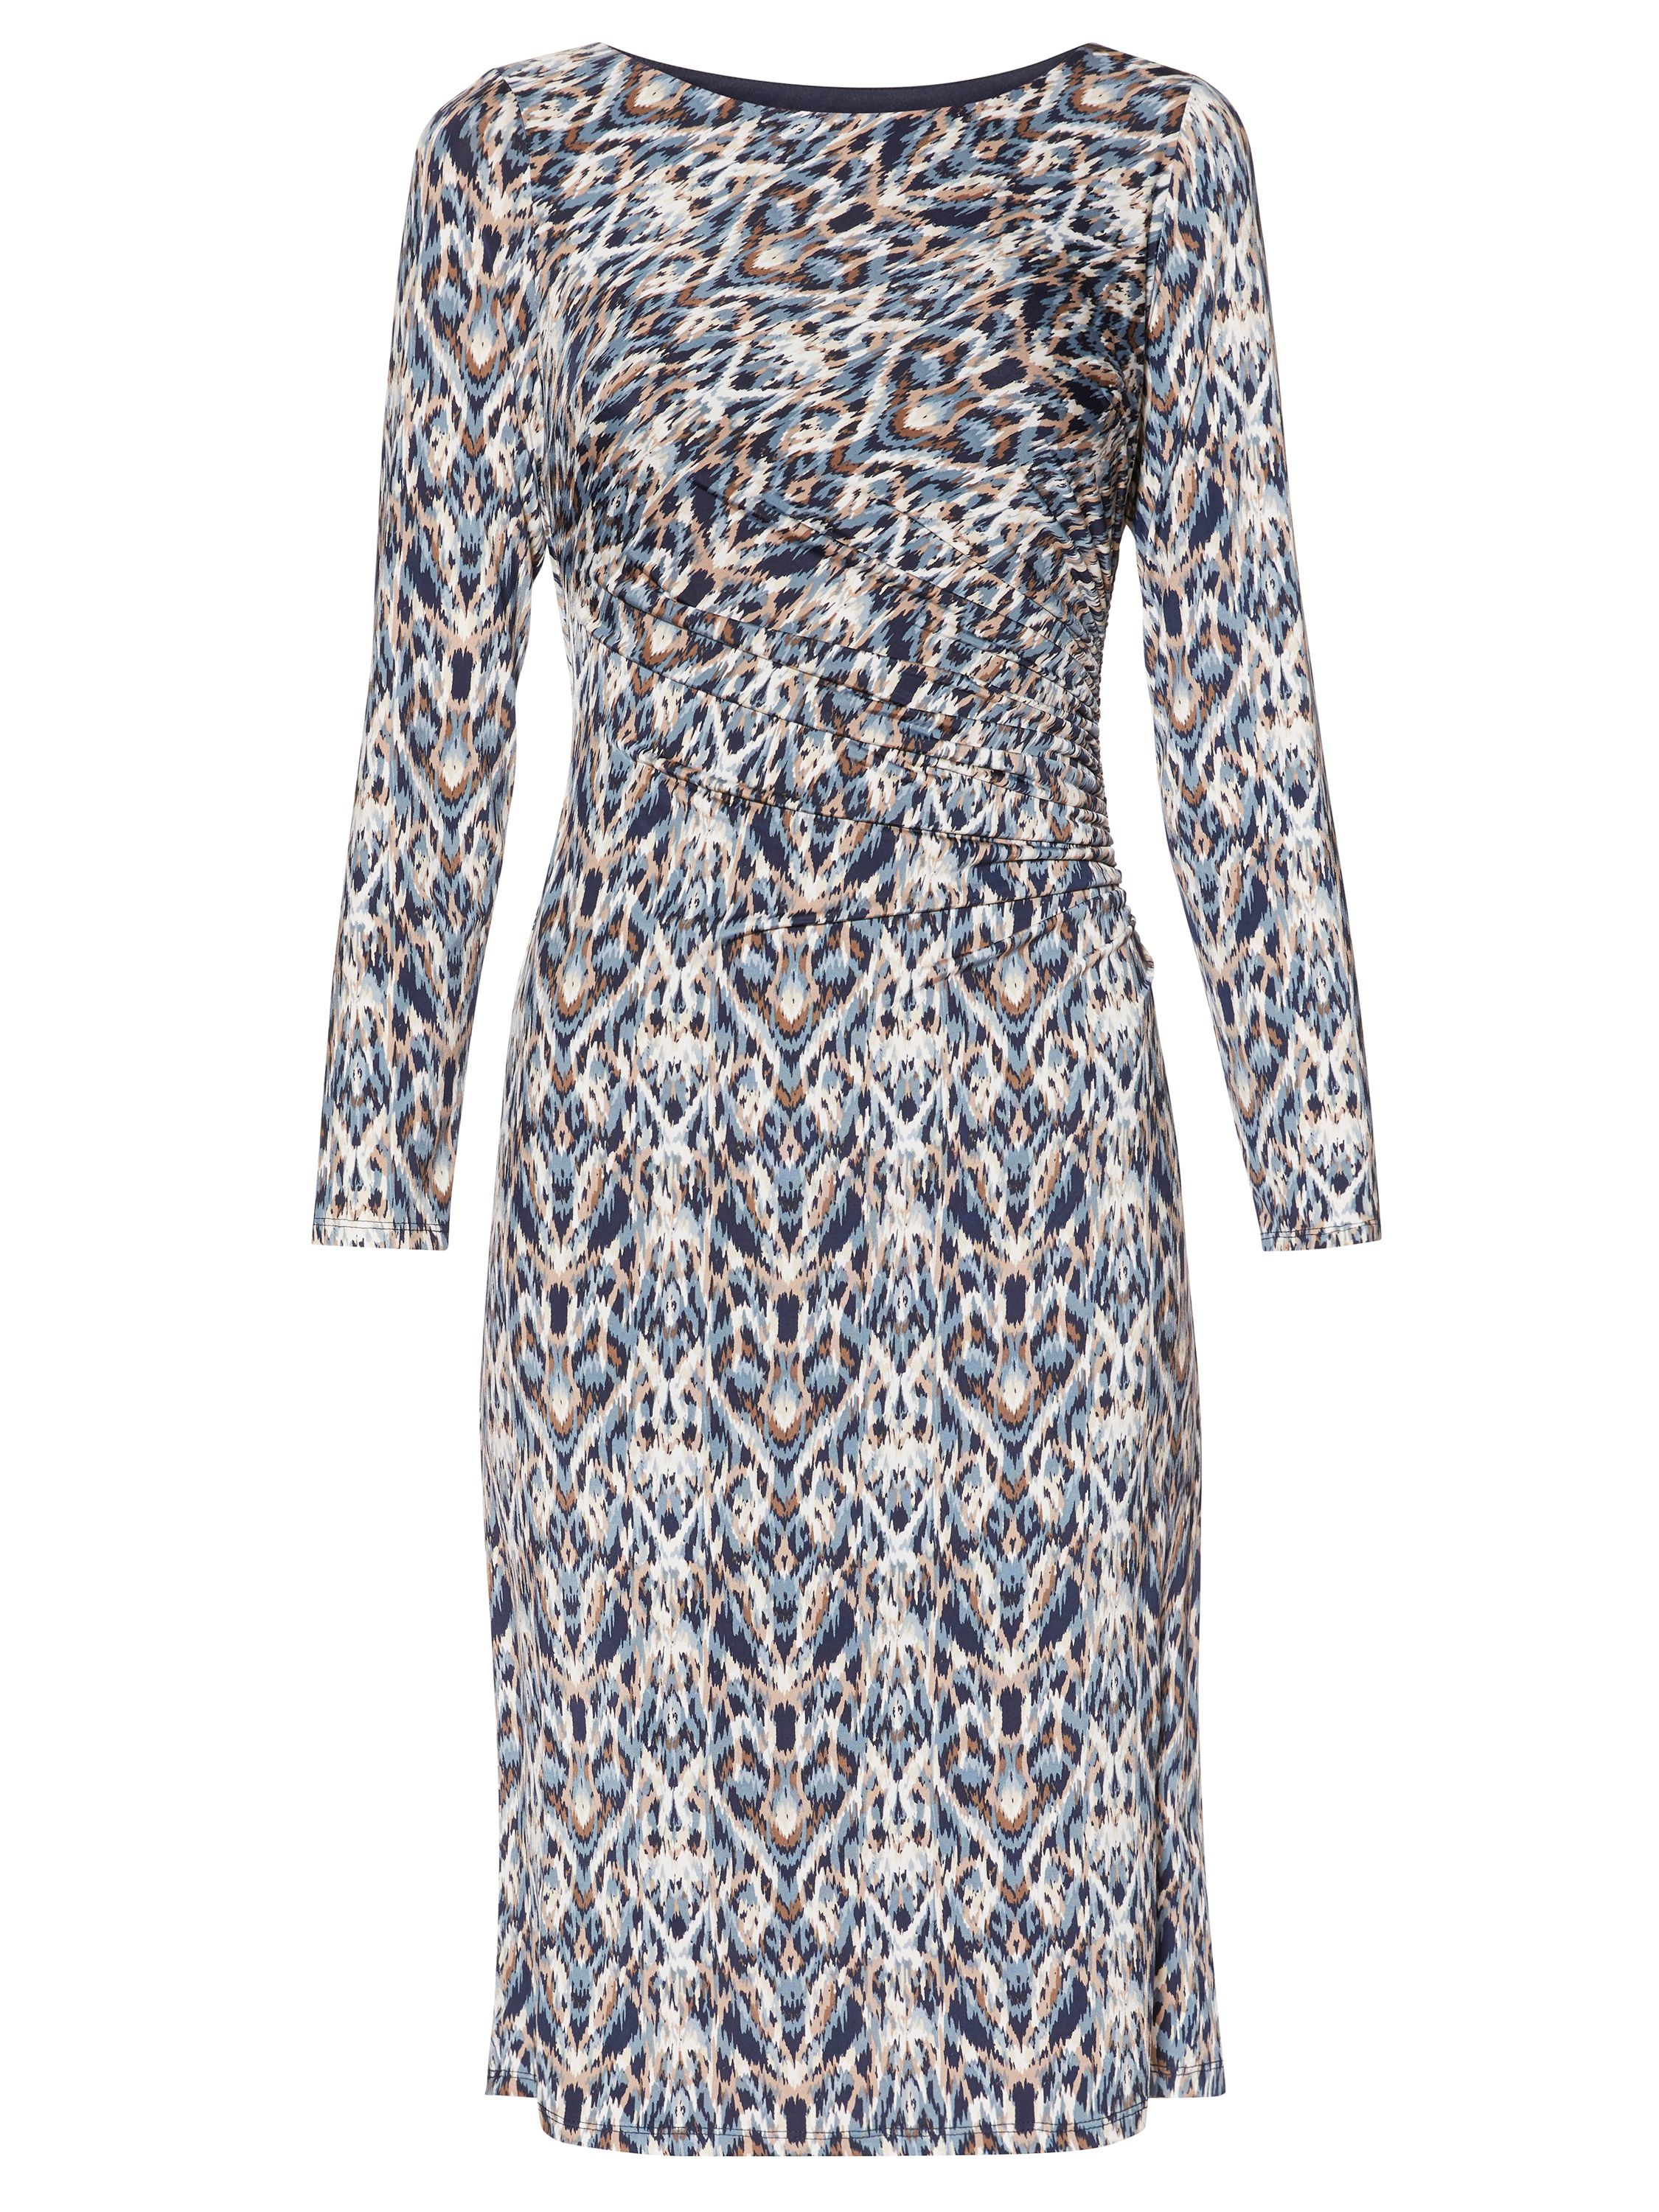 Gina Bacconi Blue Multi Print Jersey Dress, Multi-Coloured